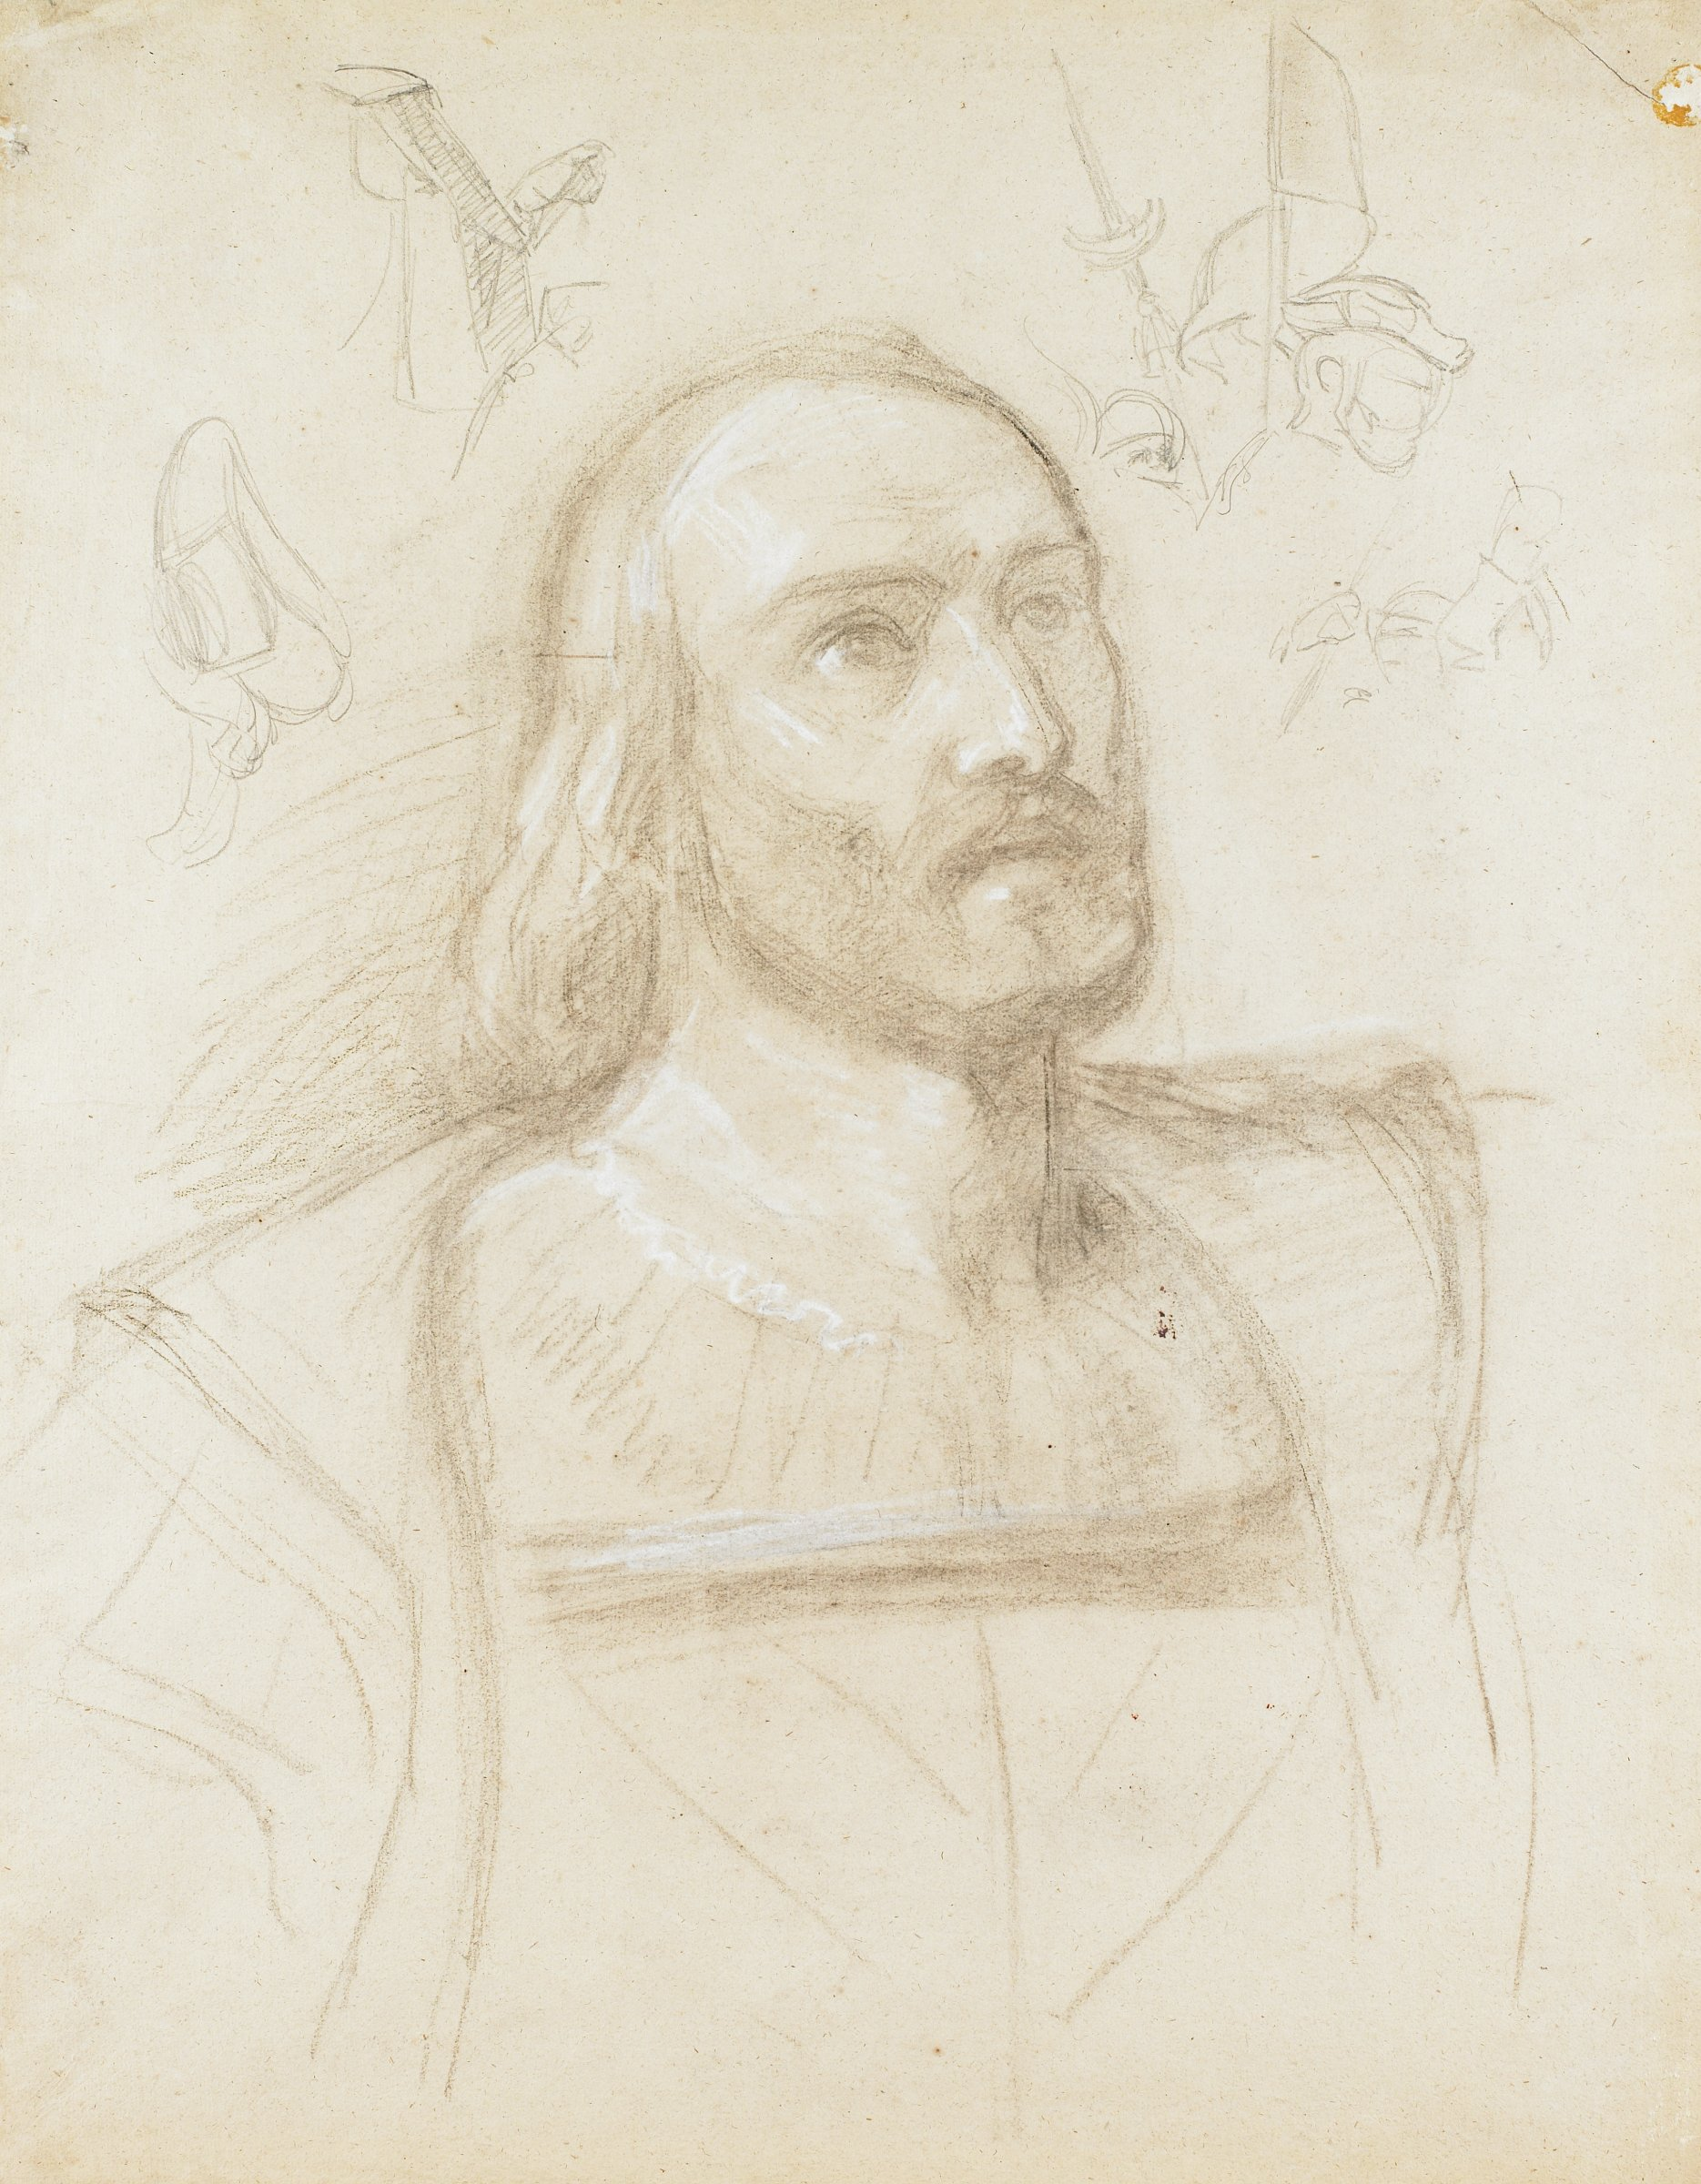 Study for head and bust of Columbus with marginal pencil sketches; verso bears loose, unfinished sketch